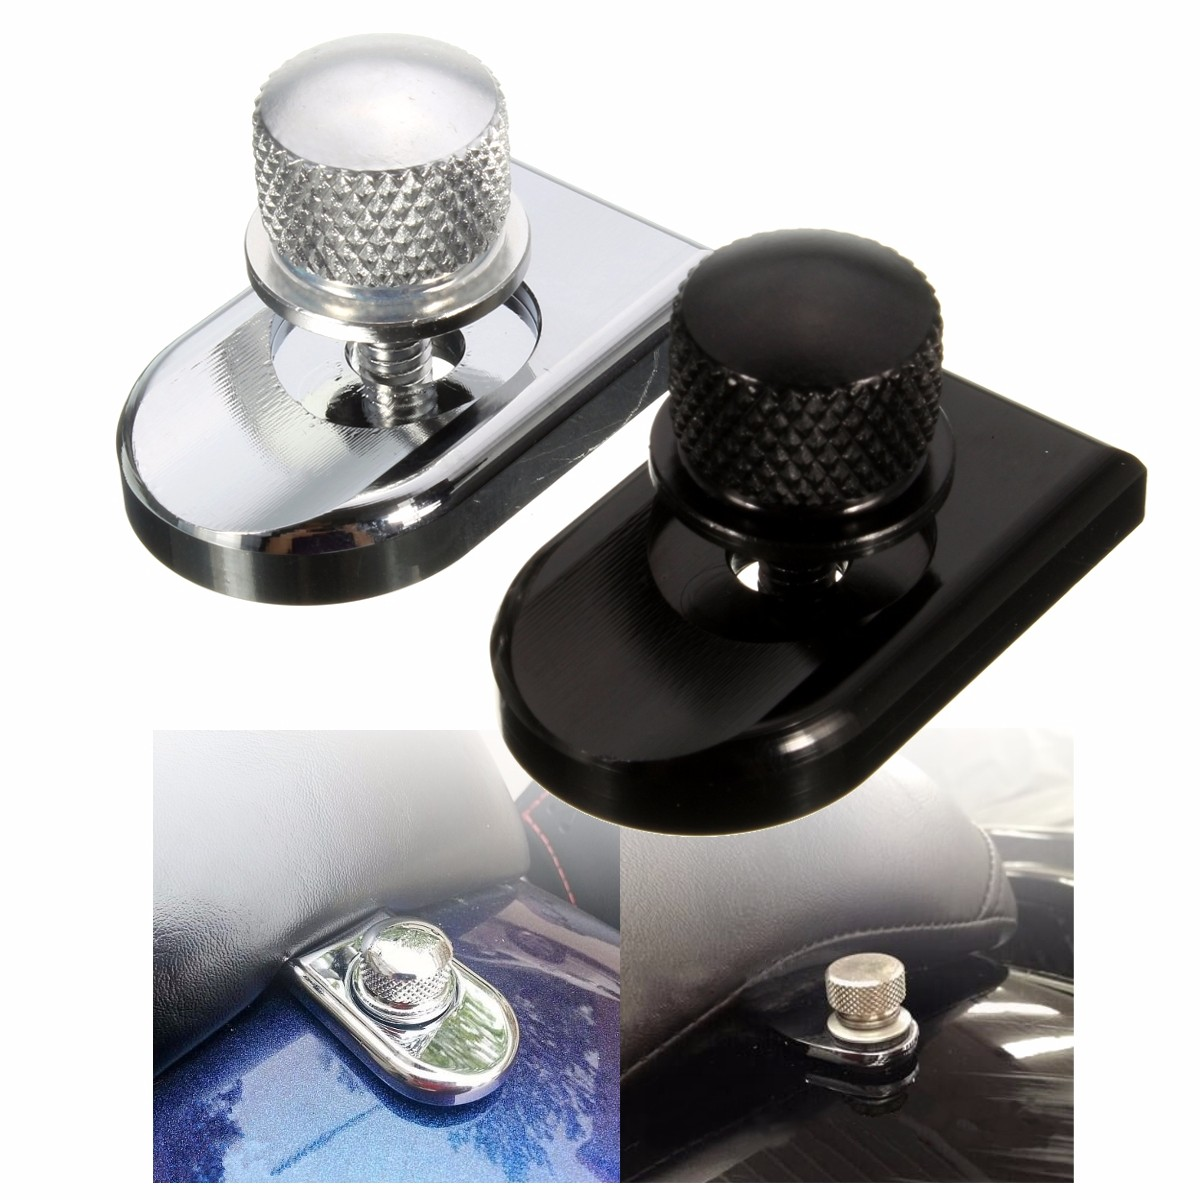 1/4-20 Motorcycle Seat Bolt Tab Screw Mount Knob Cover for Harley Sportster Dyna